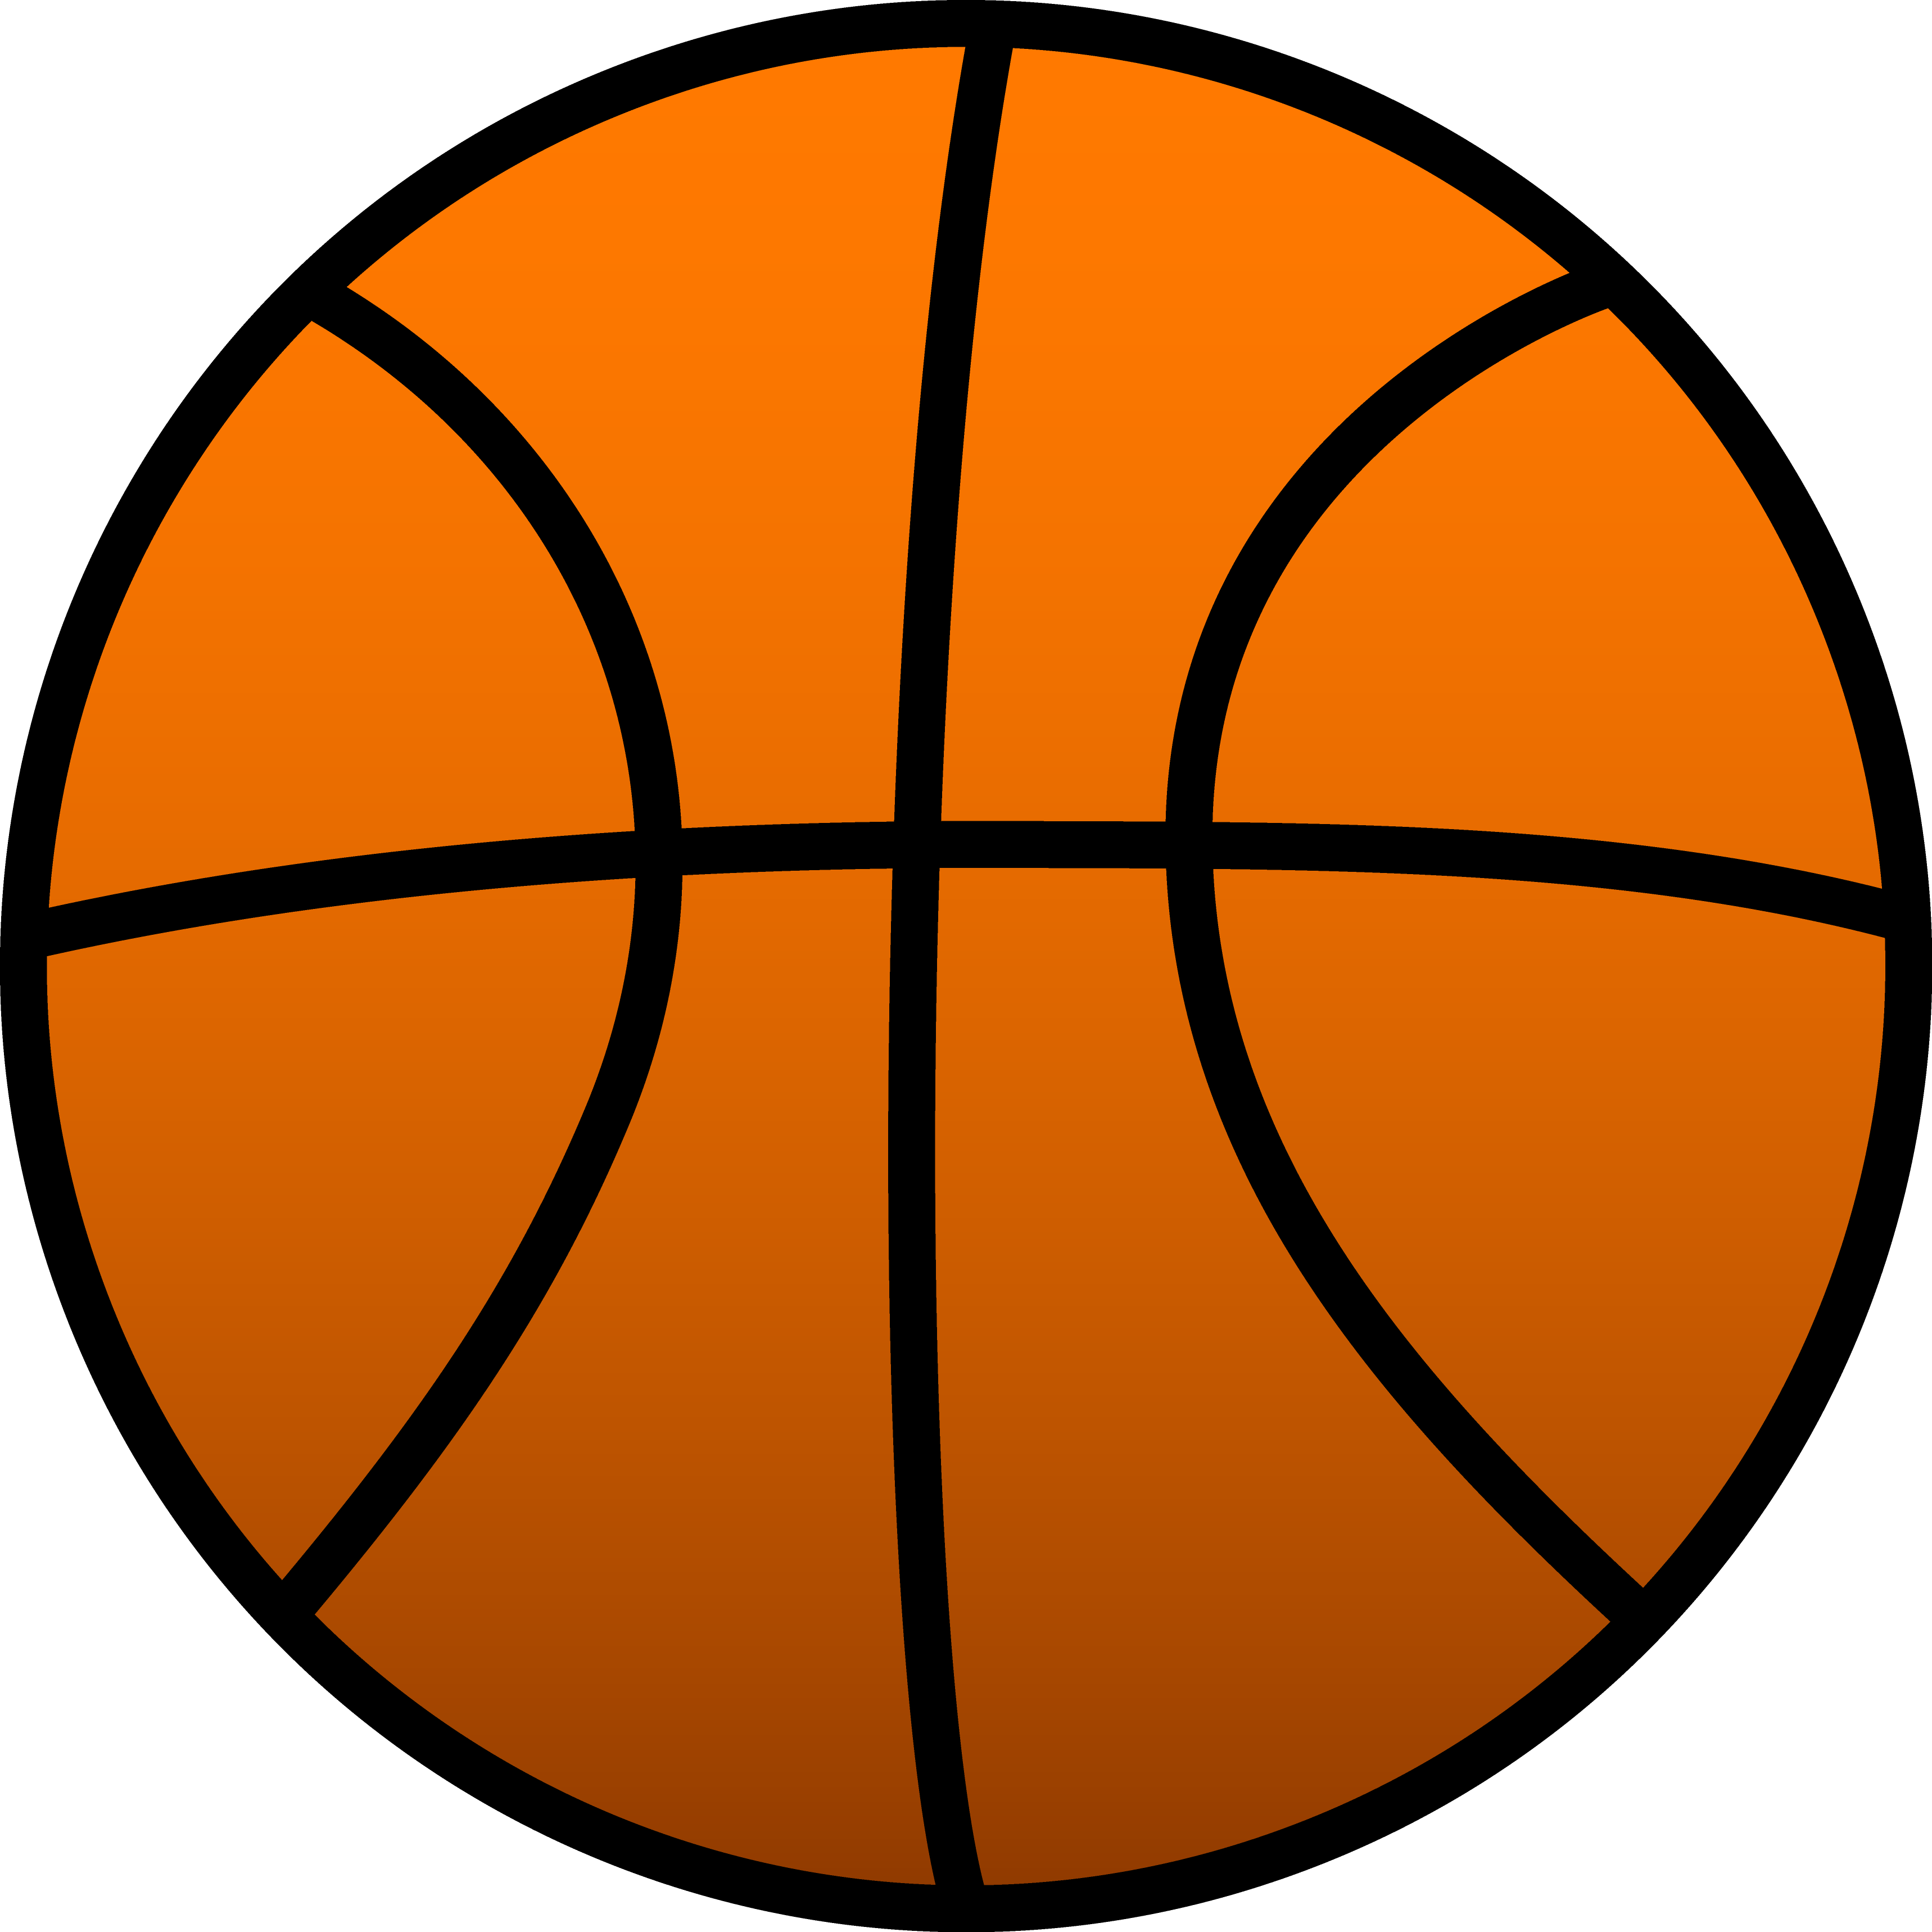 Basketball vector art free clipart best for Free basketball vector